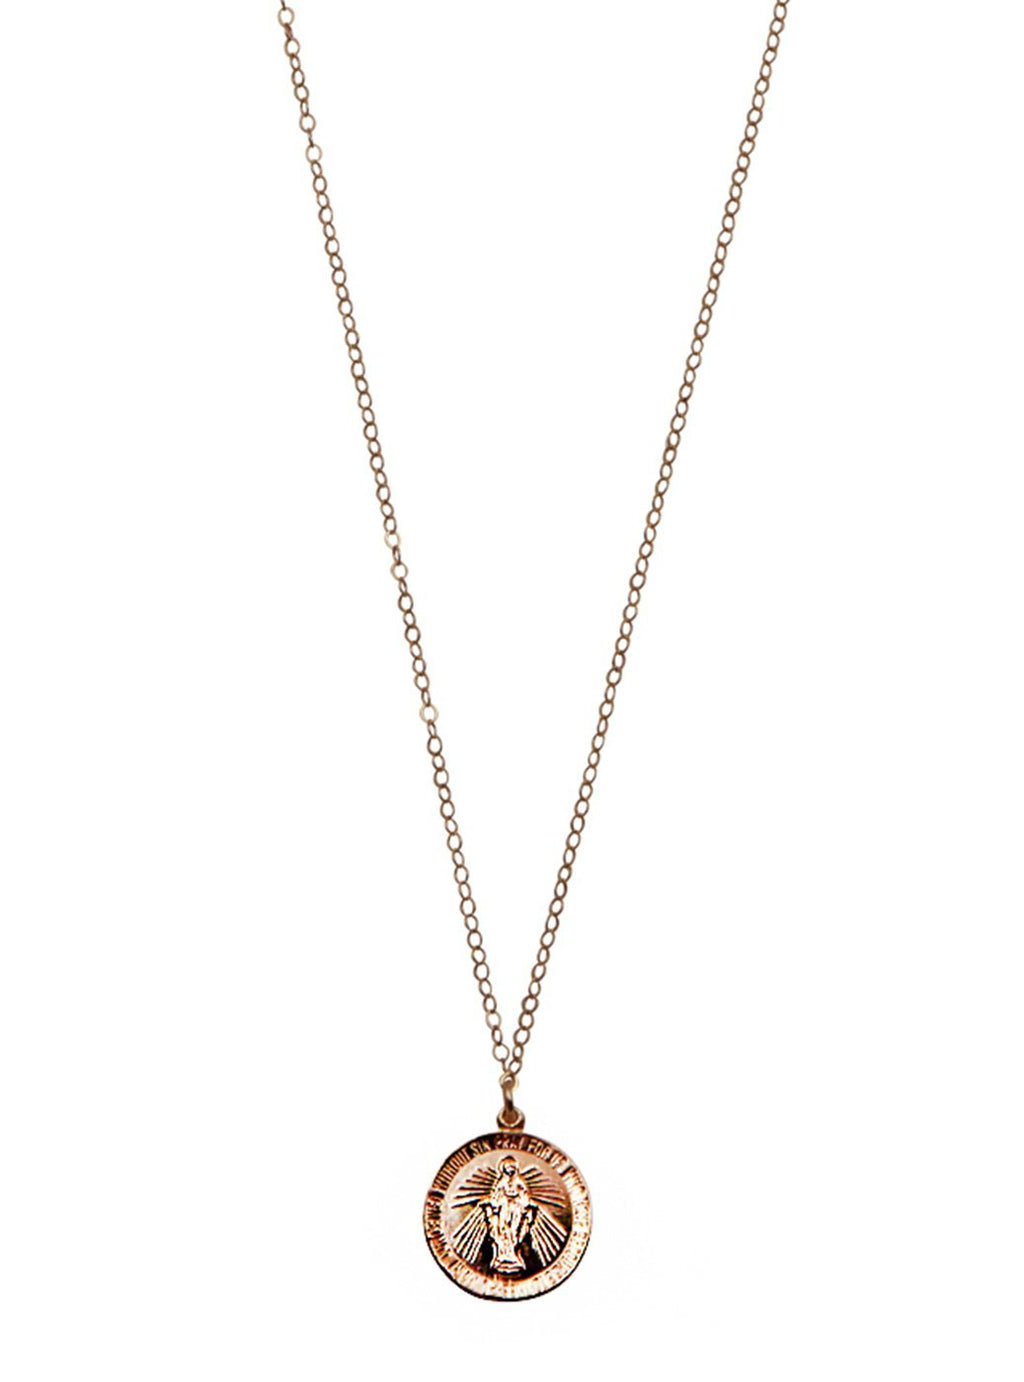 Round Gold Virgin Mary Pendant Necklace